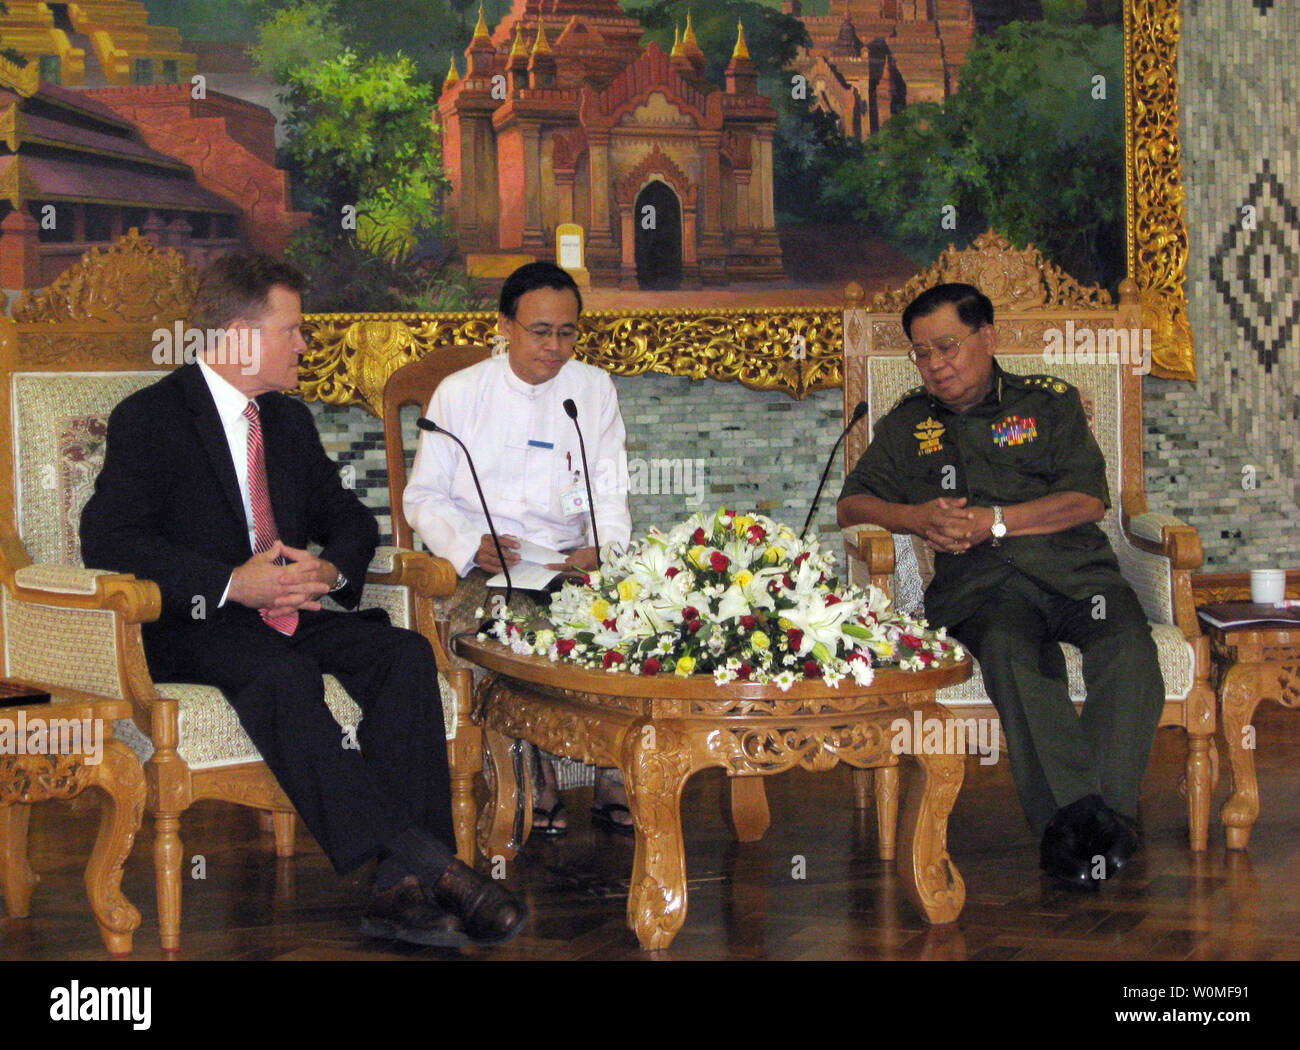 U.S. Sen. Jim Webb (D-VA) (L) meets with Myanmar's leader General Than Shwe in Yangon, Myanmar on August 15, 2009. Webb also met with opposition leader Aung San Suu Kyi, who has been detained for 14 of the past 20 years and was convicted of violating the terms of her house arrest by allowing American John Yettaw to stay at her home for two days. After Sen. Webb's visit, the generals of Myanmar agreed to release Yettaw, who was sentenced to seven years of hard labor. UPI/Sen. Webb's office - Stock Image